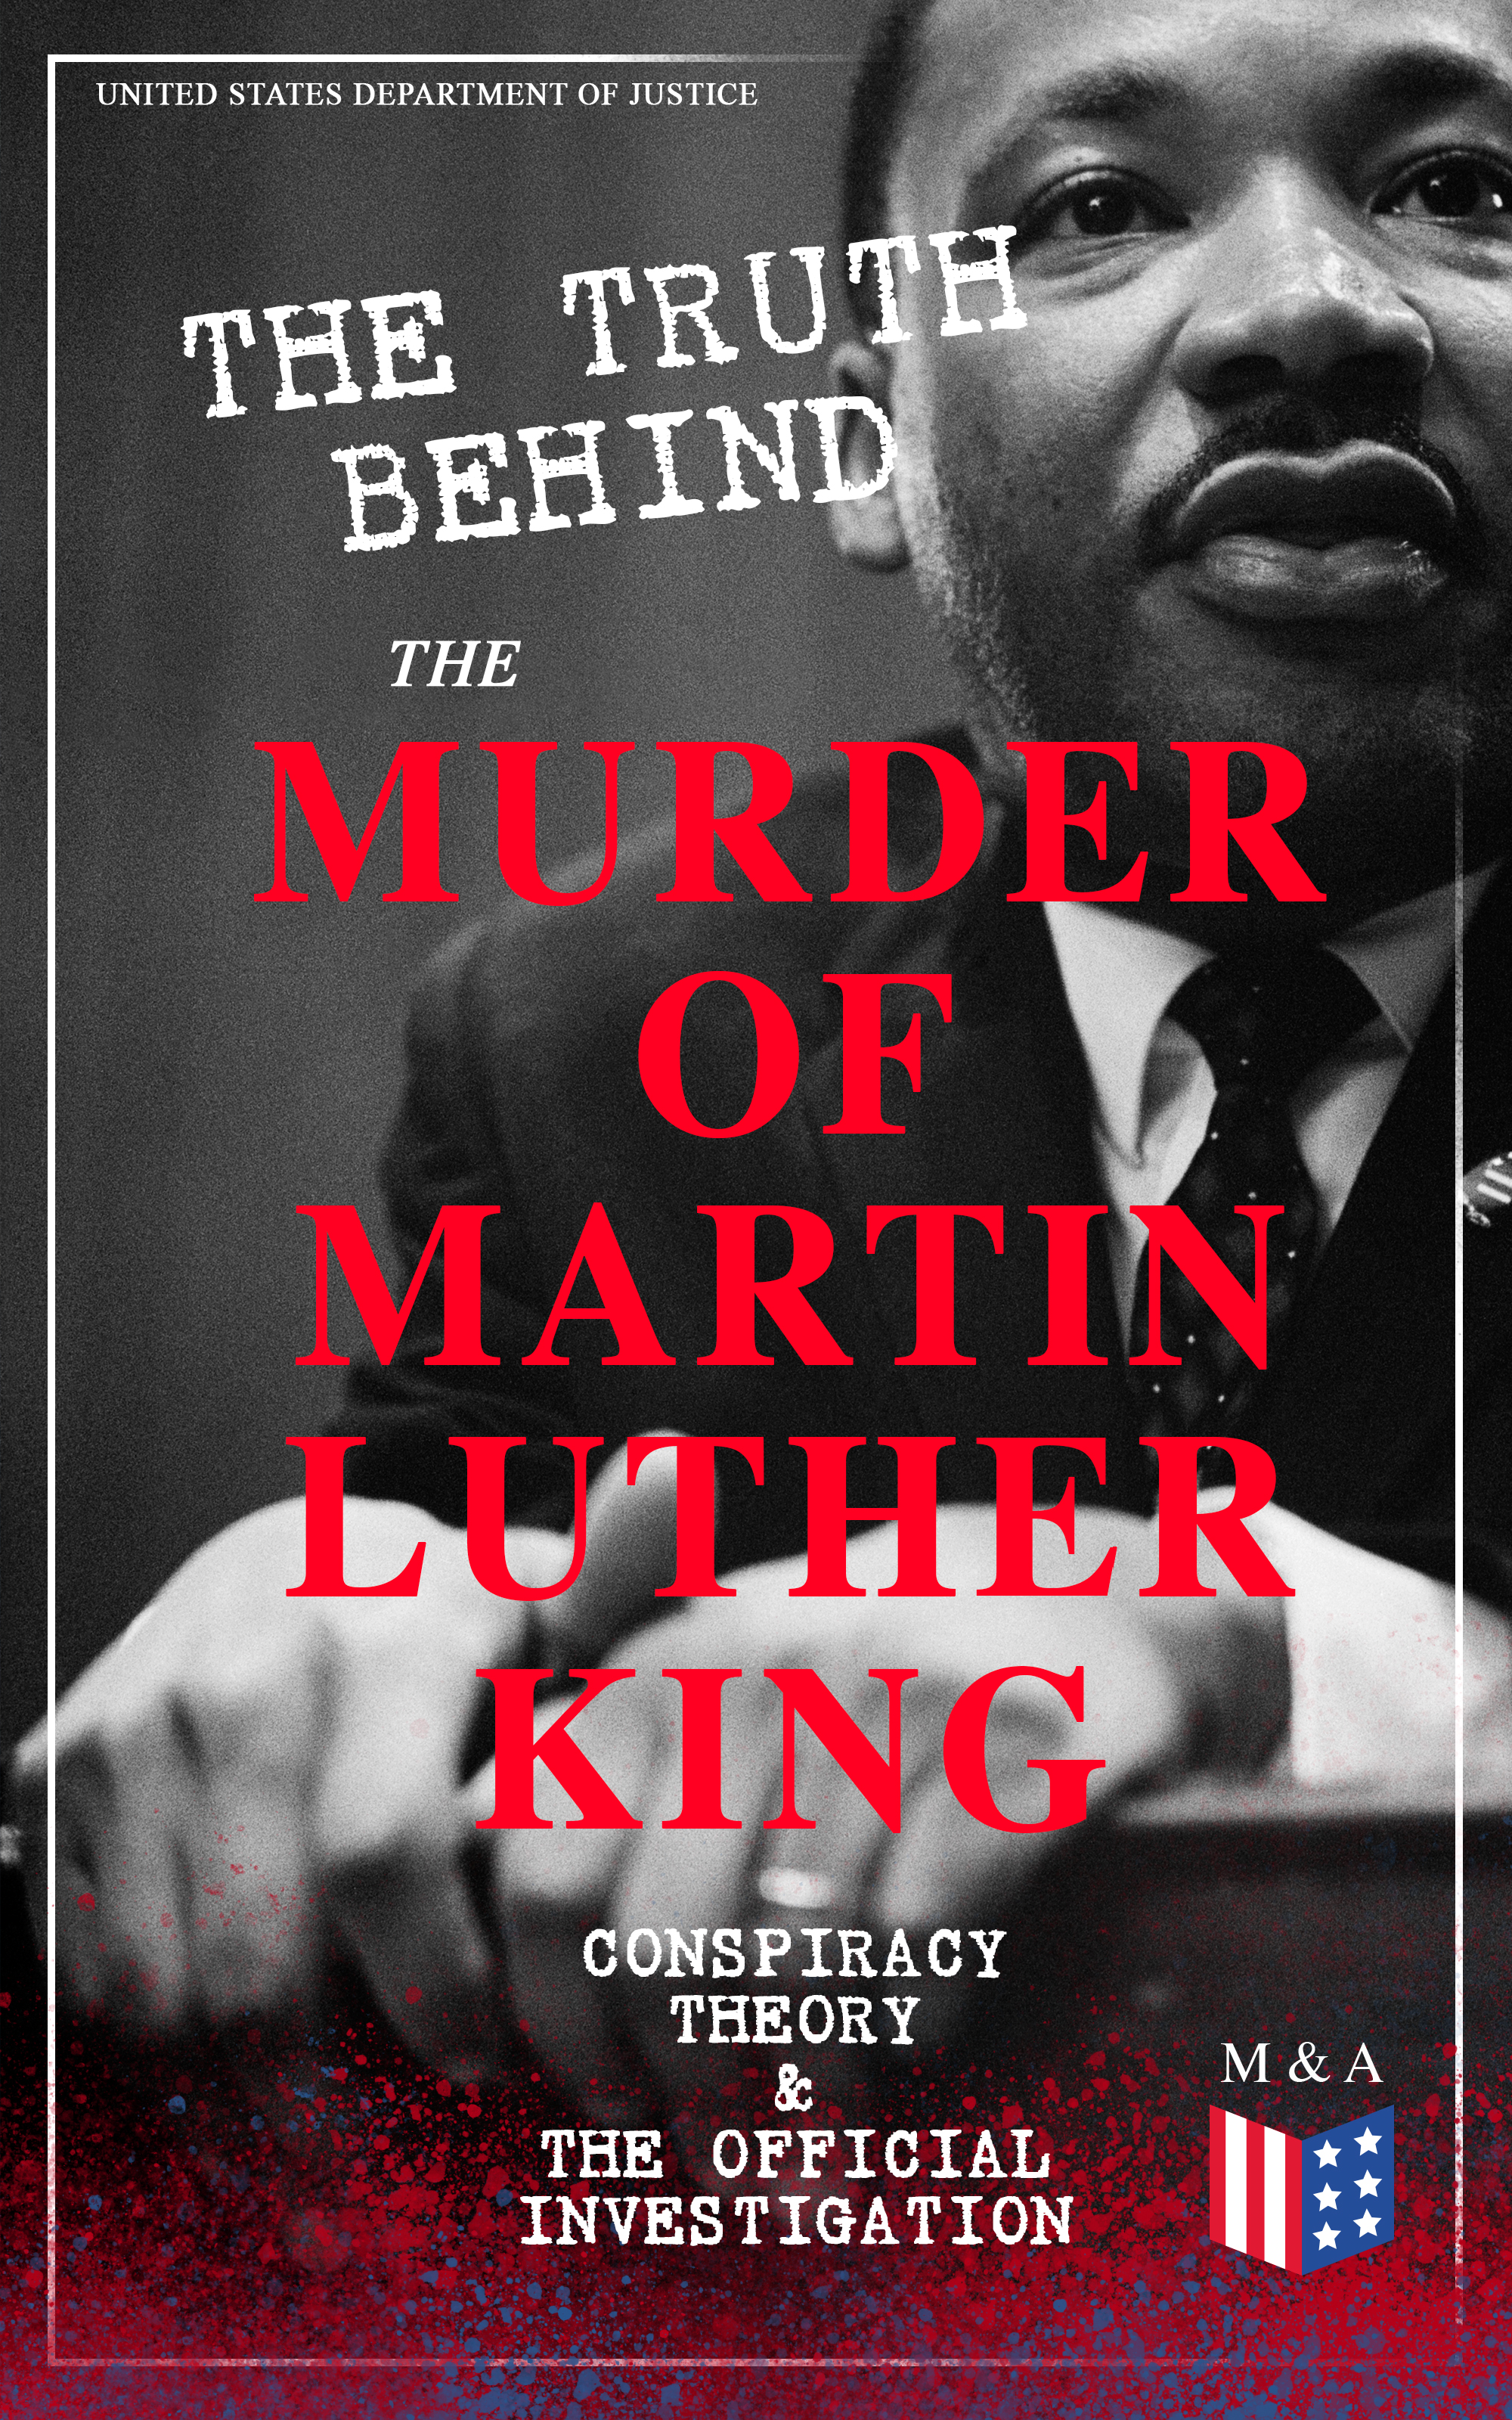 United States Department of Justice The Truth Behind the Murder of Martin Luther King – Conspiracy Theory & The Official Investigation